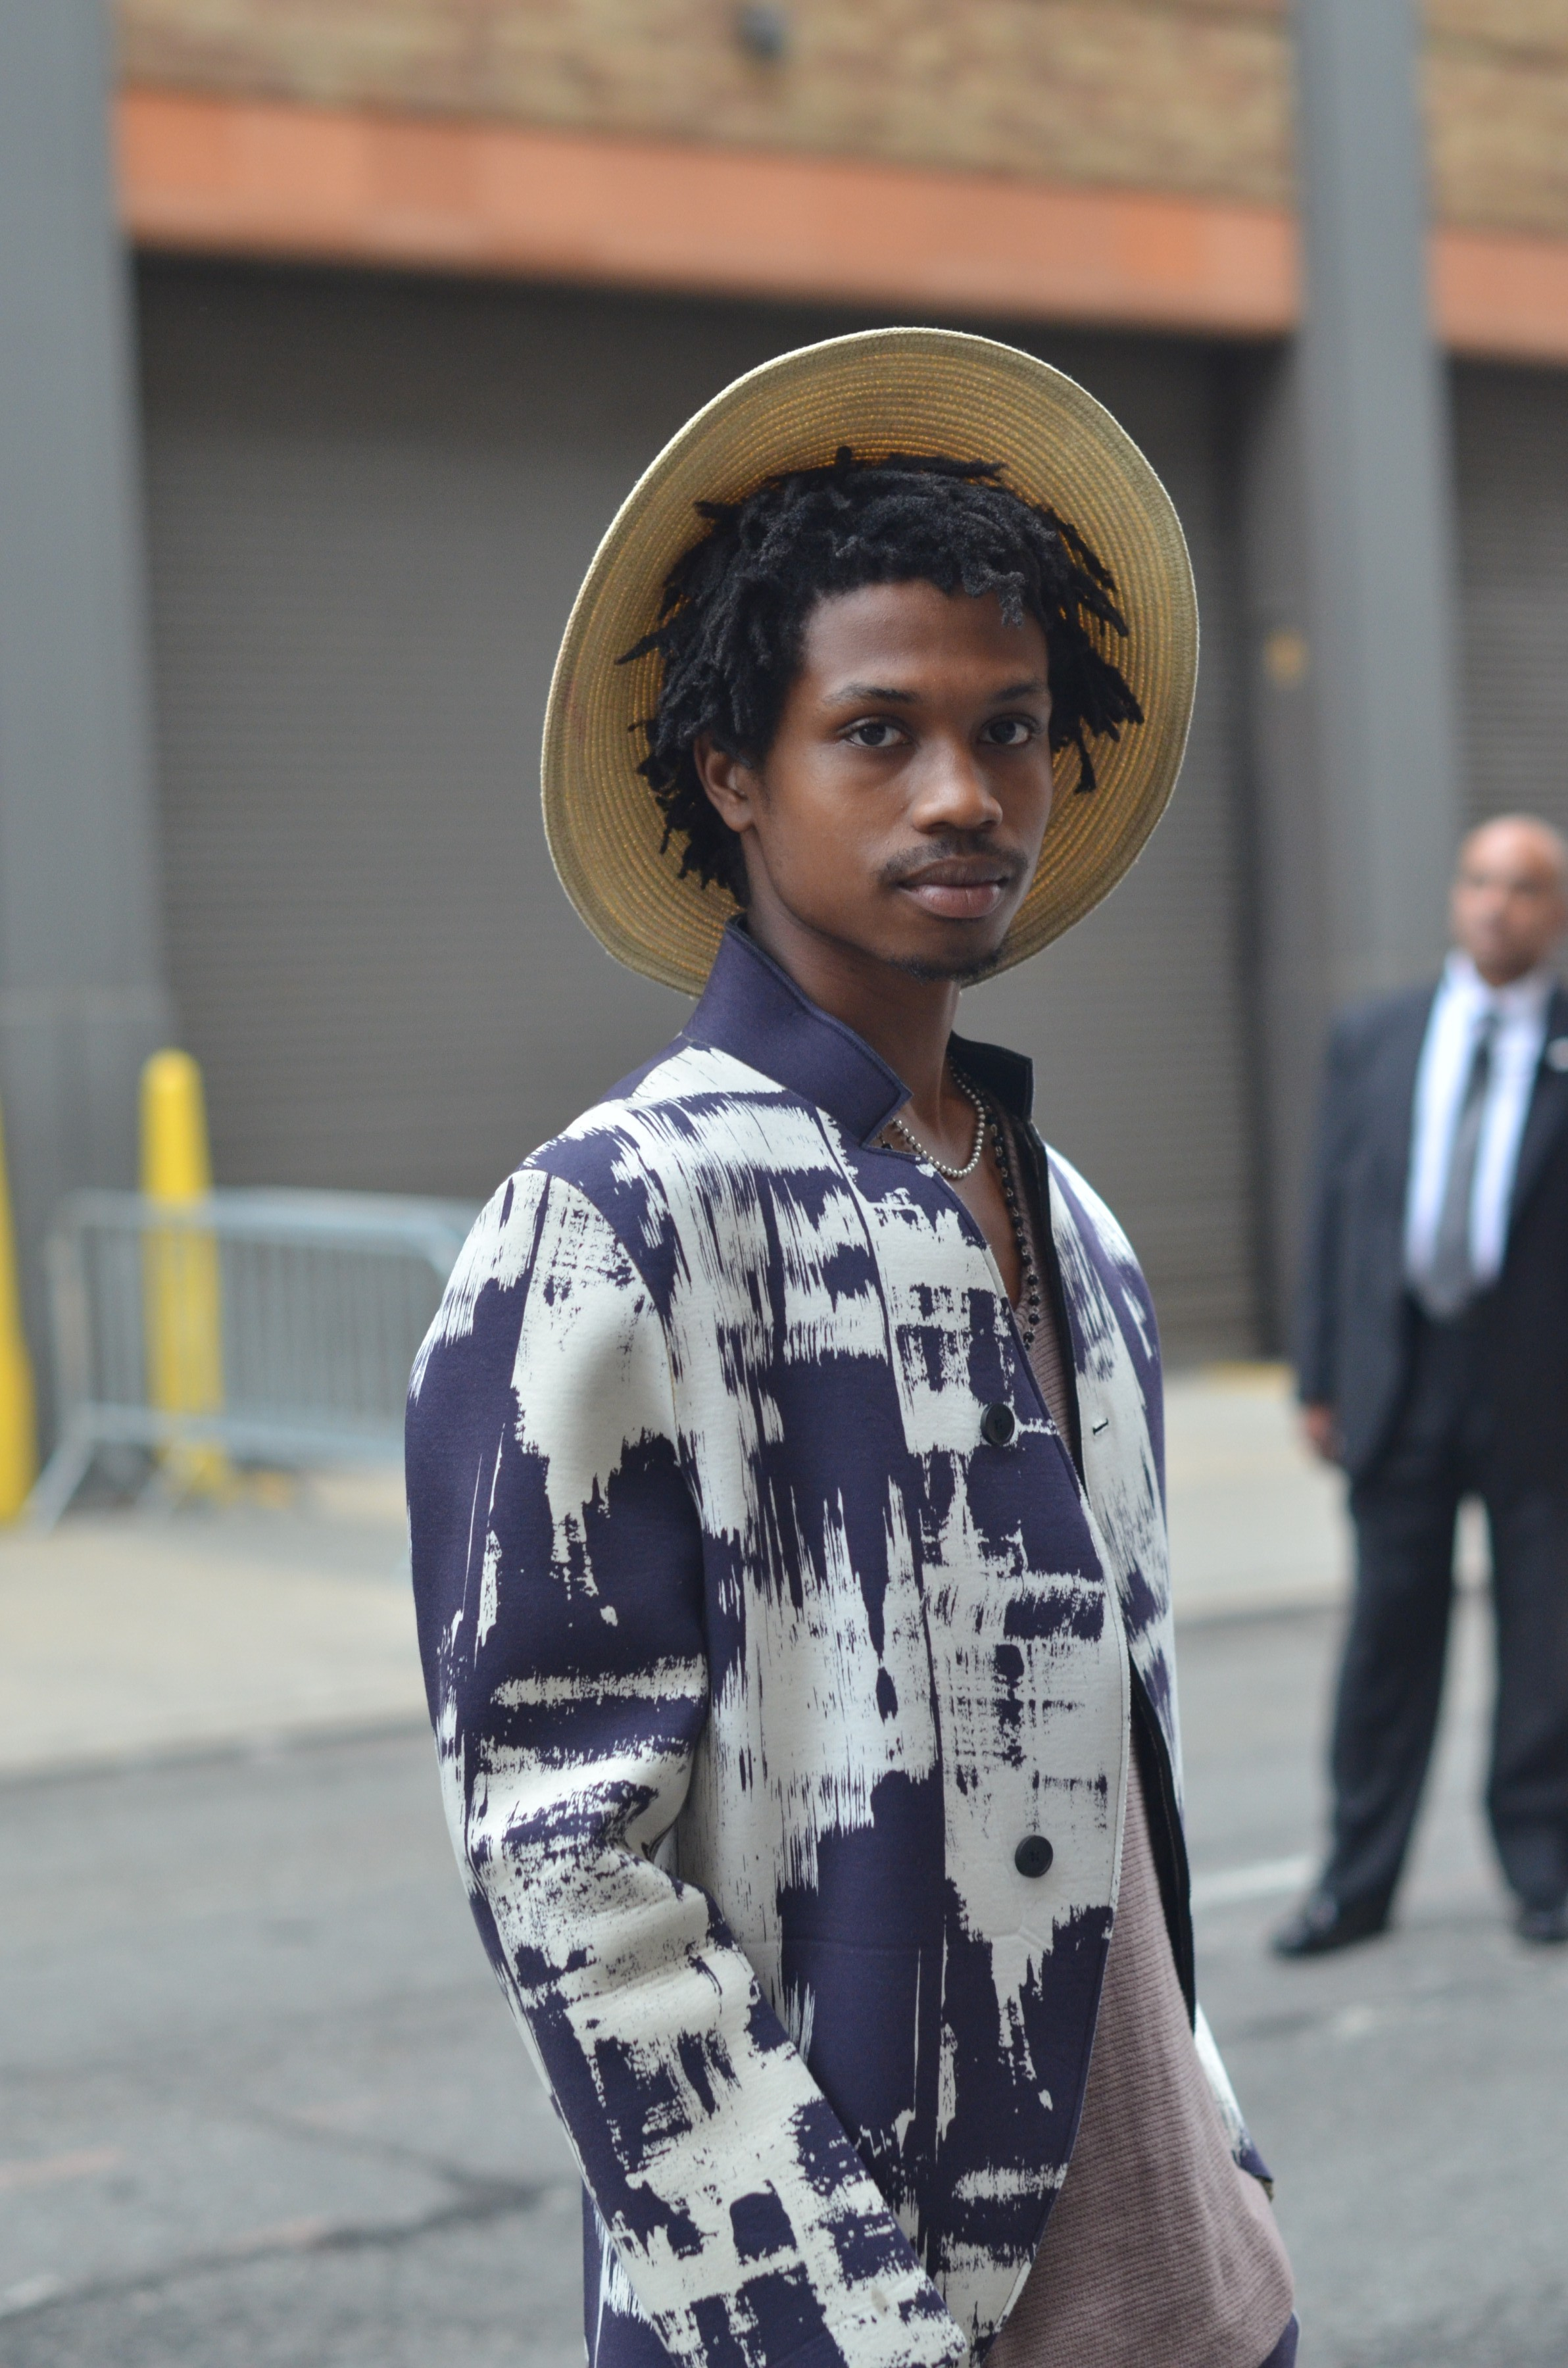 Afrian-American male model at NYFW